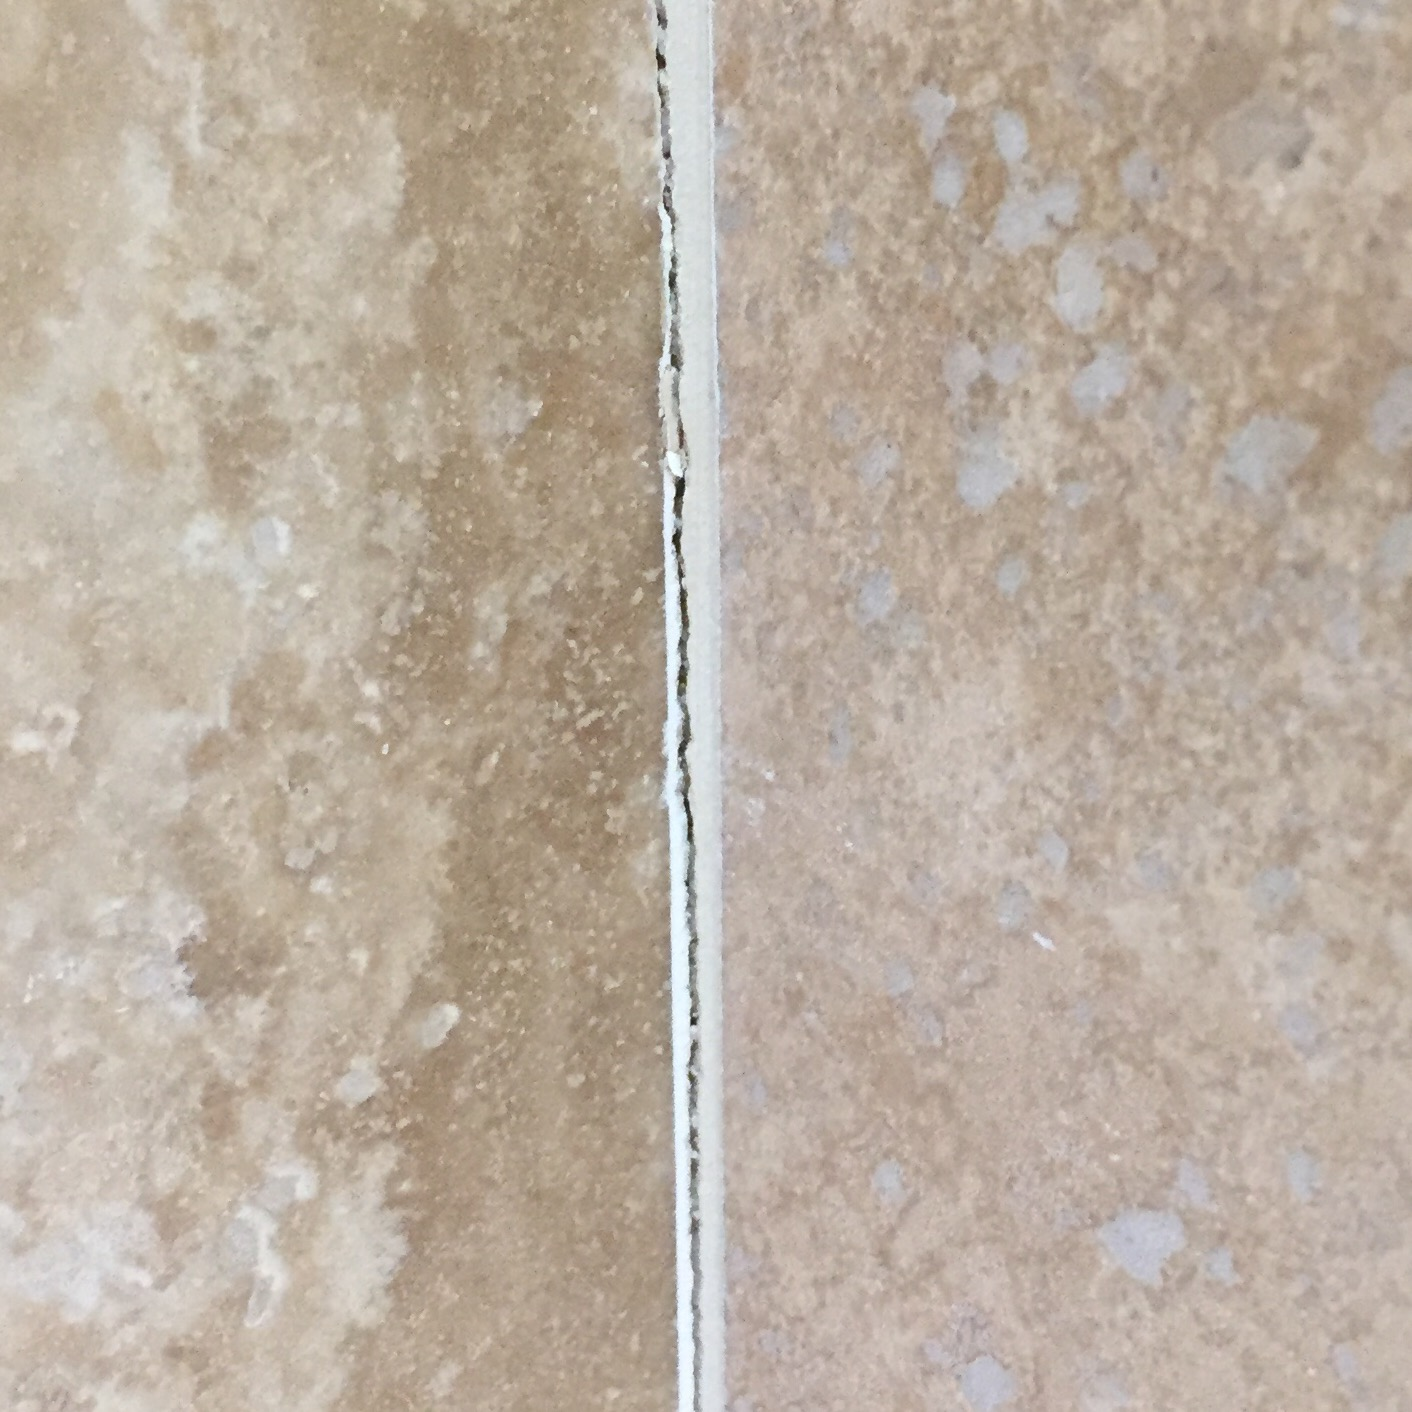 Filling Grout Lines With More Grout